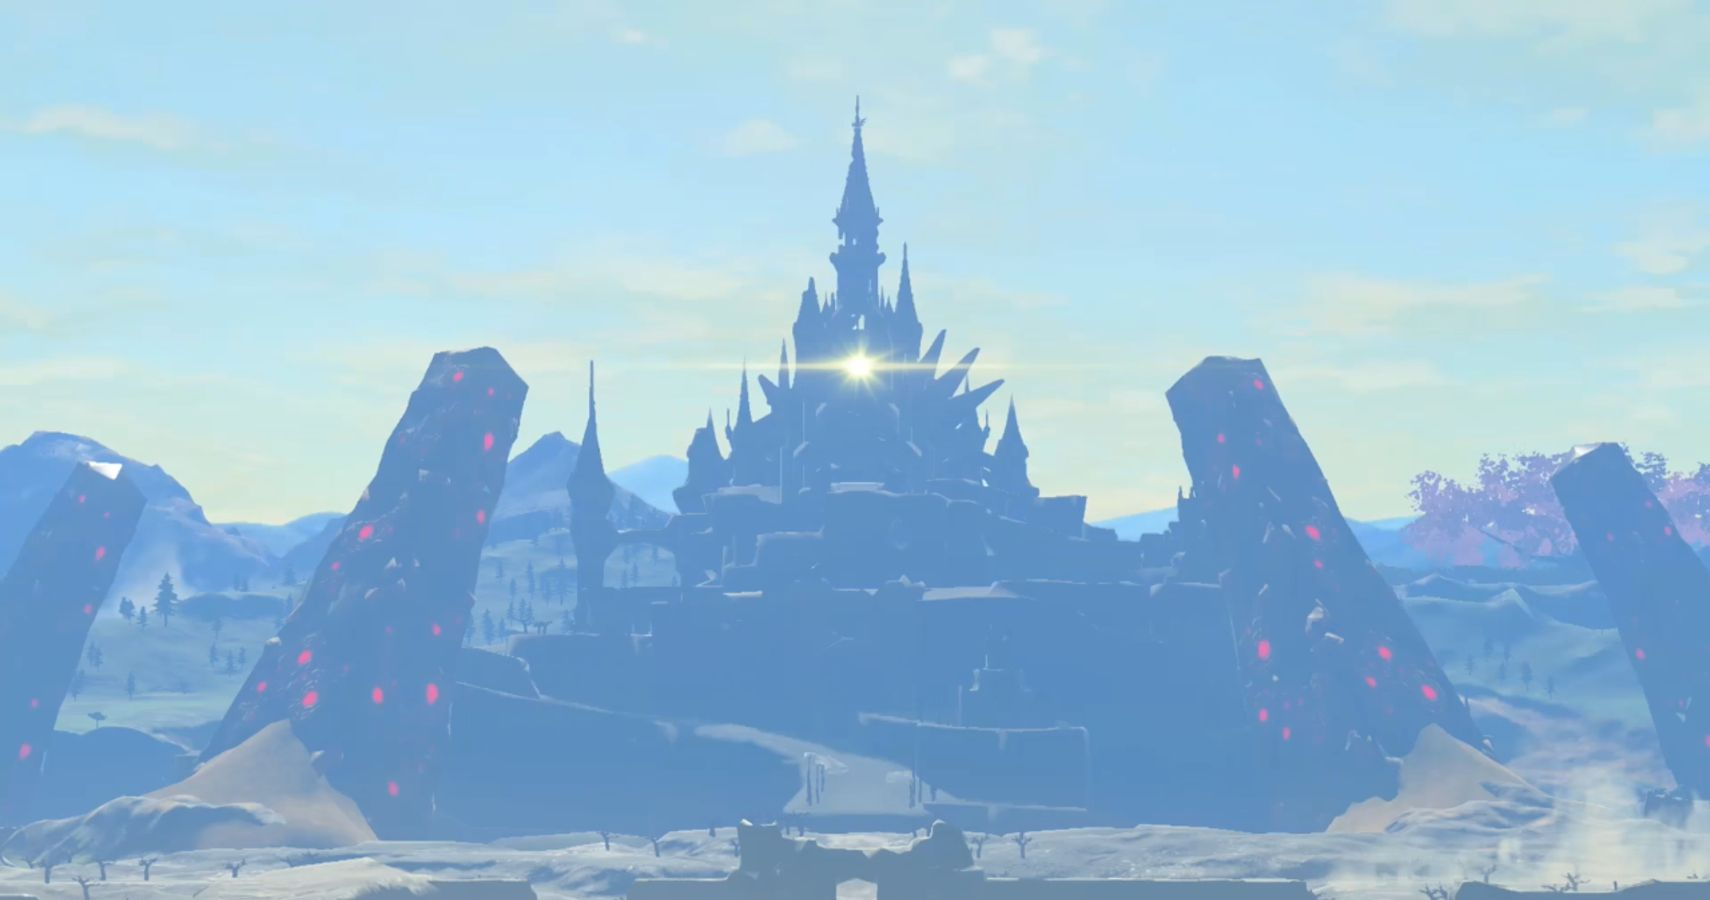 The Walls Of Breath Of The Wild's Astral Observatory Form An Accurate Map Of The Game's Landmarks